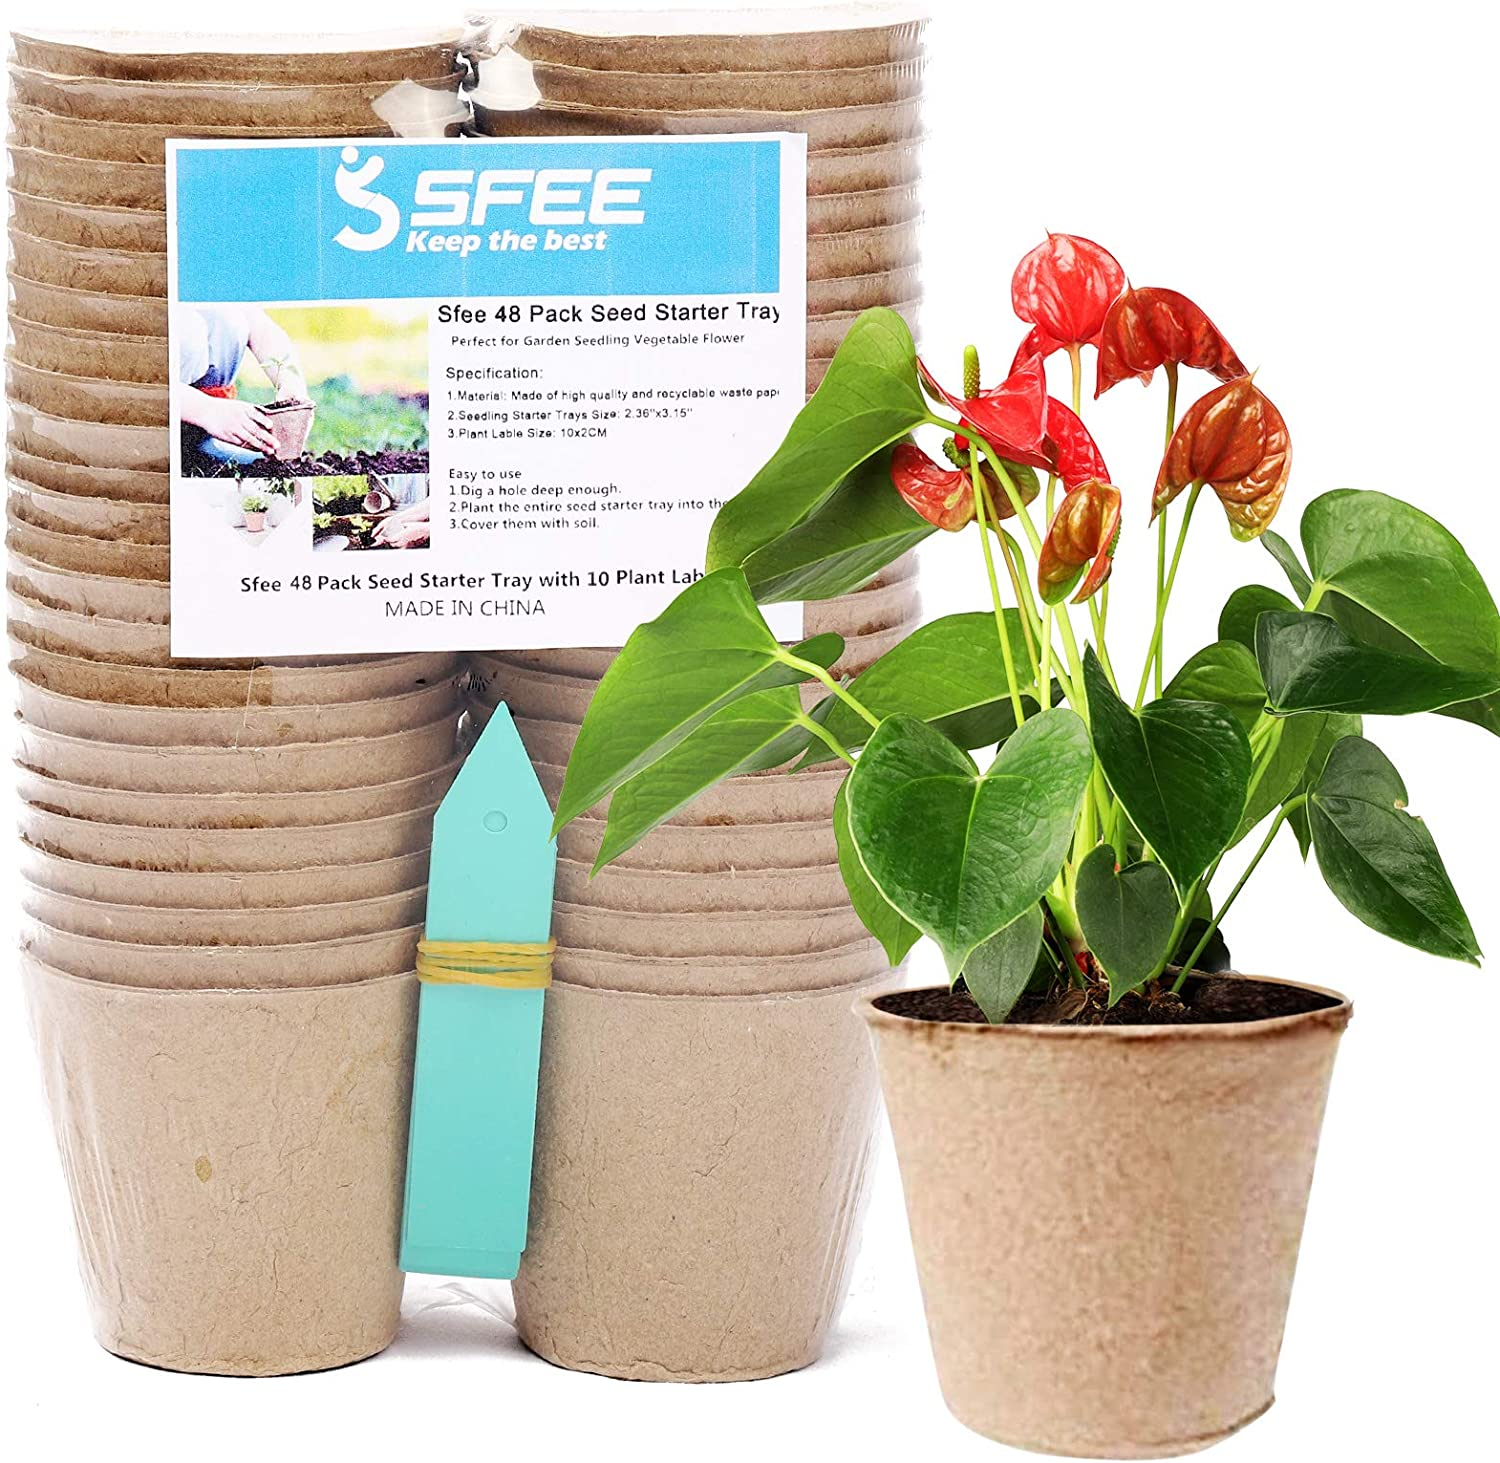 Sfee 48 Pack Seed Starter Tray Peat Pots Kits, 3.15'' Biodegradable Compostable Planting Pots Germination Sow and Grow Seed Trays for Garden with Water Label (48 Pack)